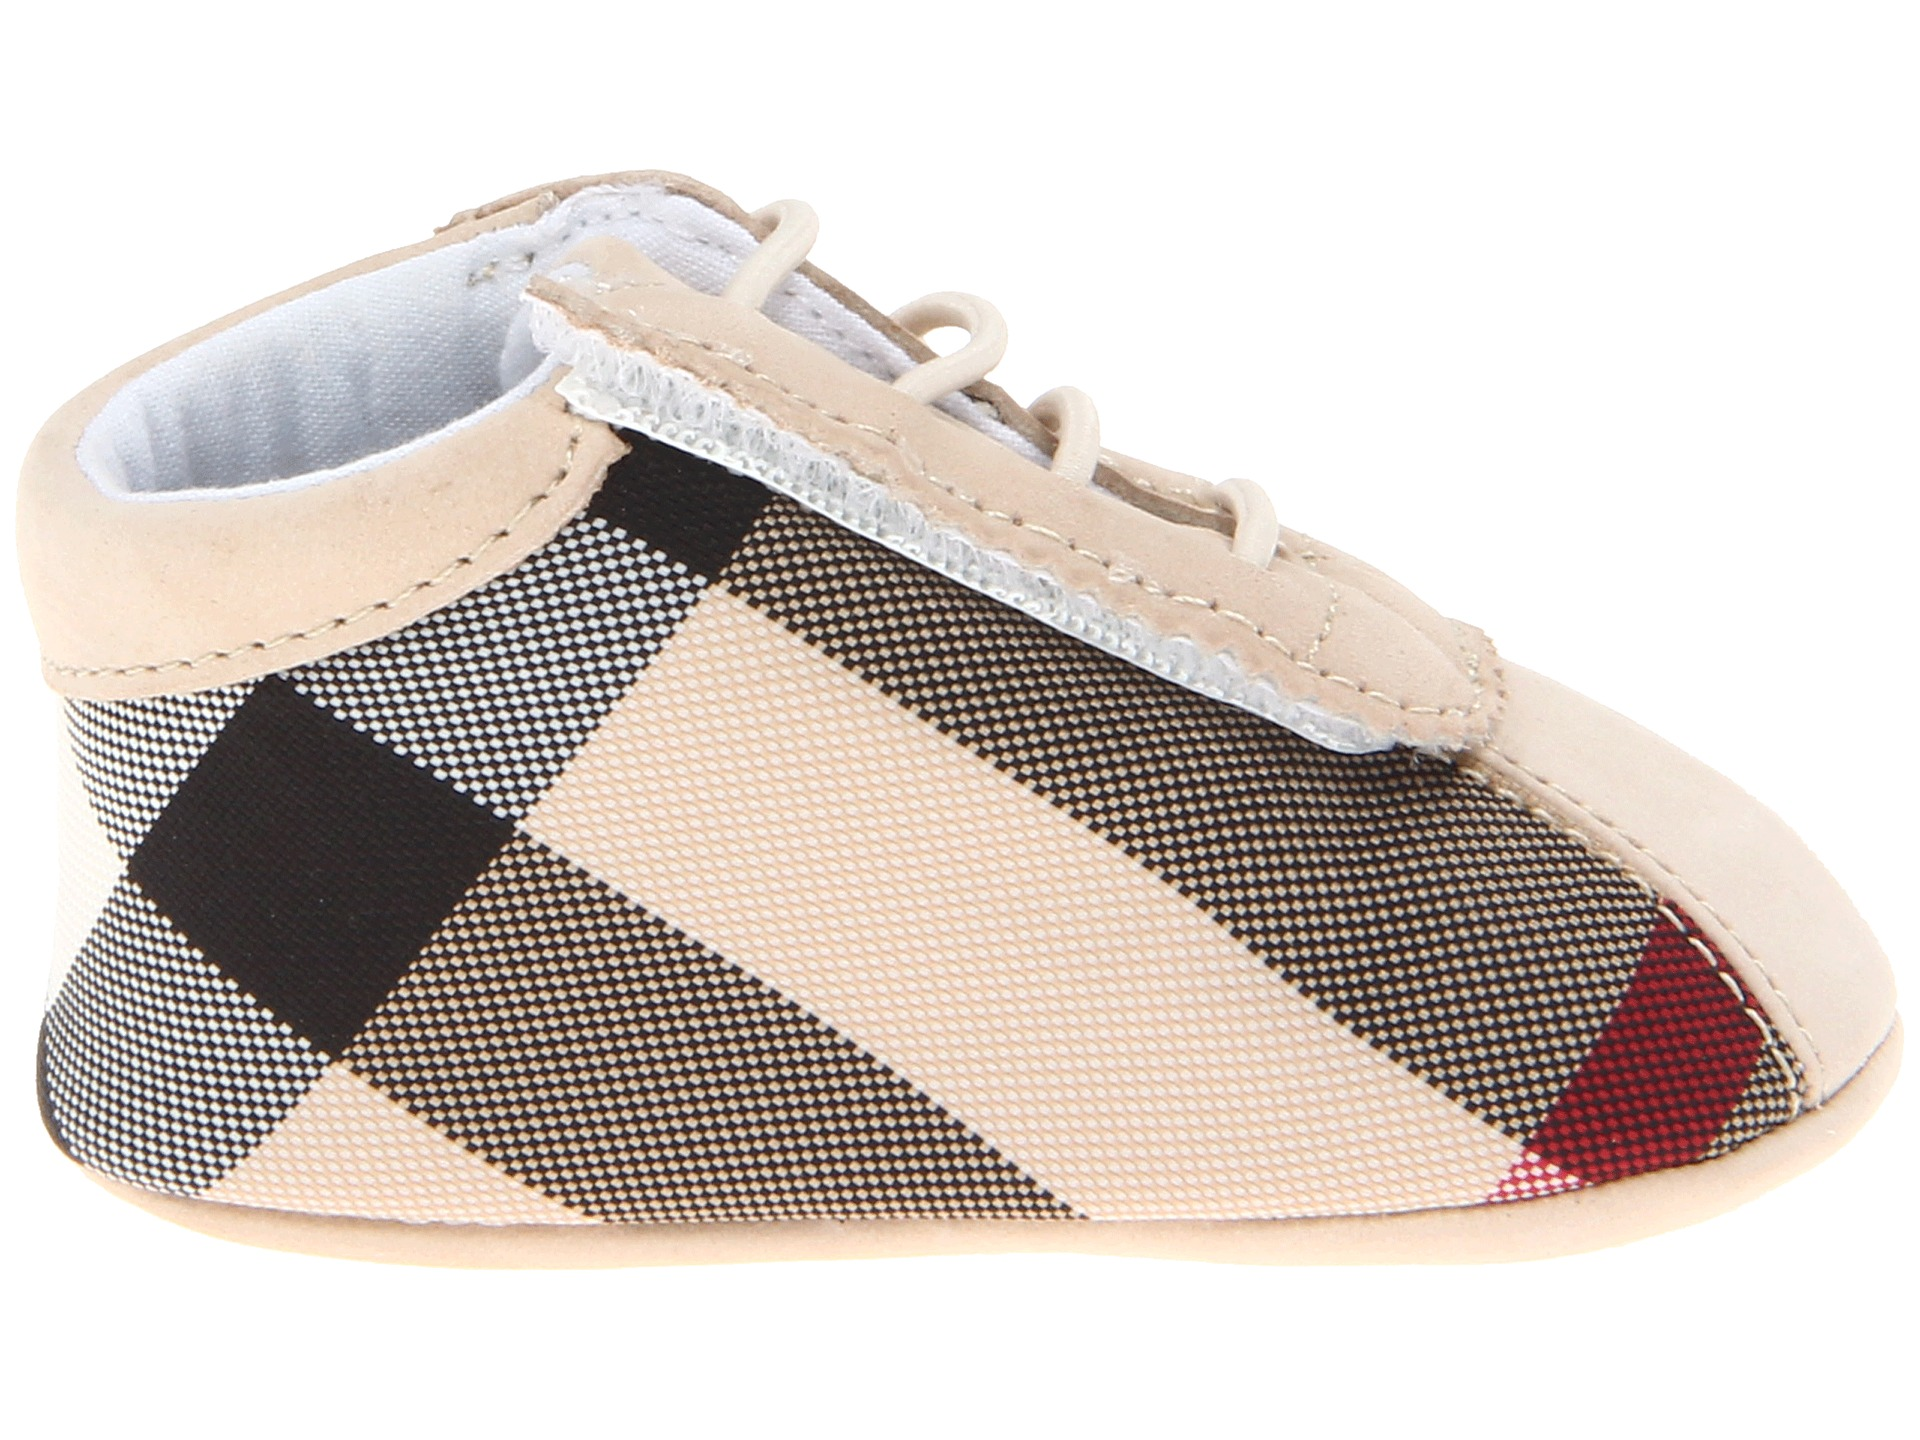 Burberry Shoes For Women On Sale Burberry kids bosco bootie